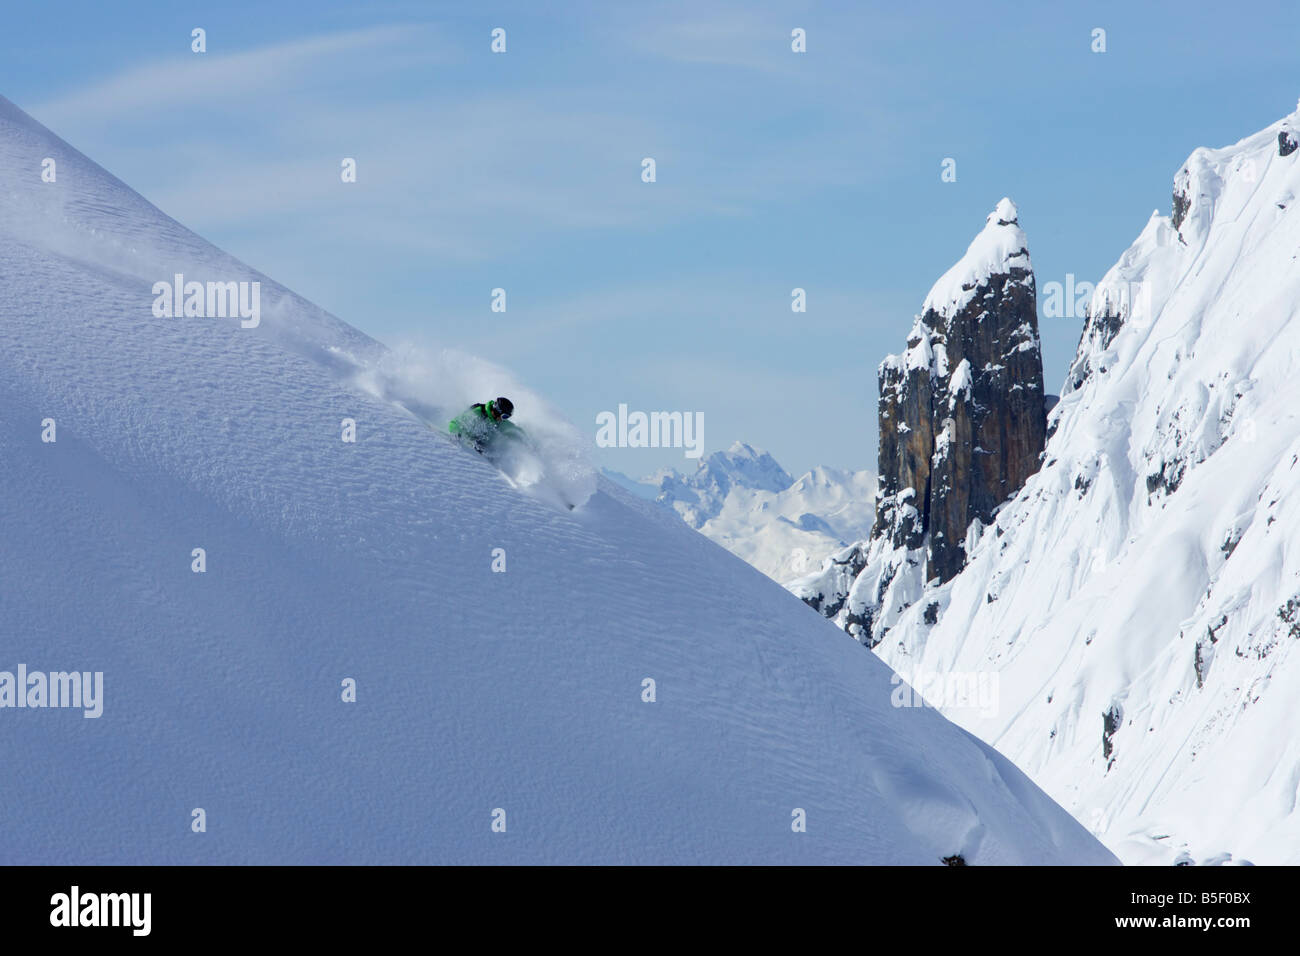 Skier doing a tight turn on intact snow - Stock Image